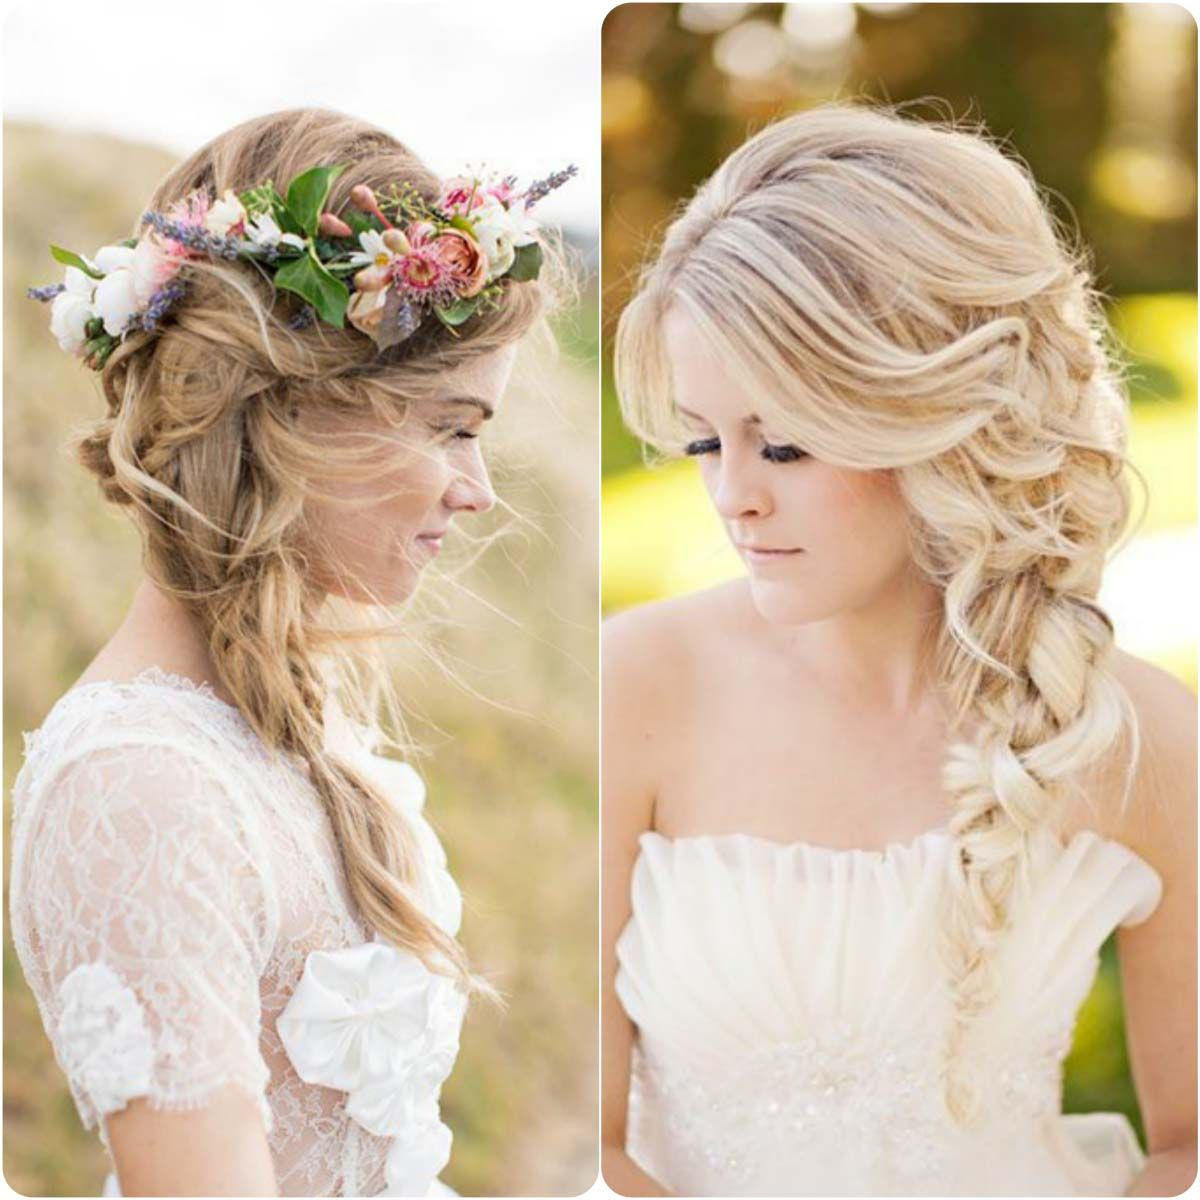 Braid Hairstyles For Wedding Party: Messy-Side-Braids...styloplanet.com_.jpg (1200×1200